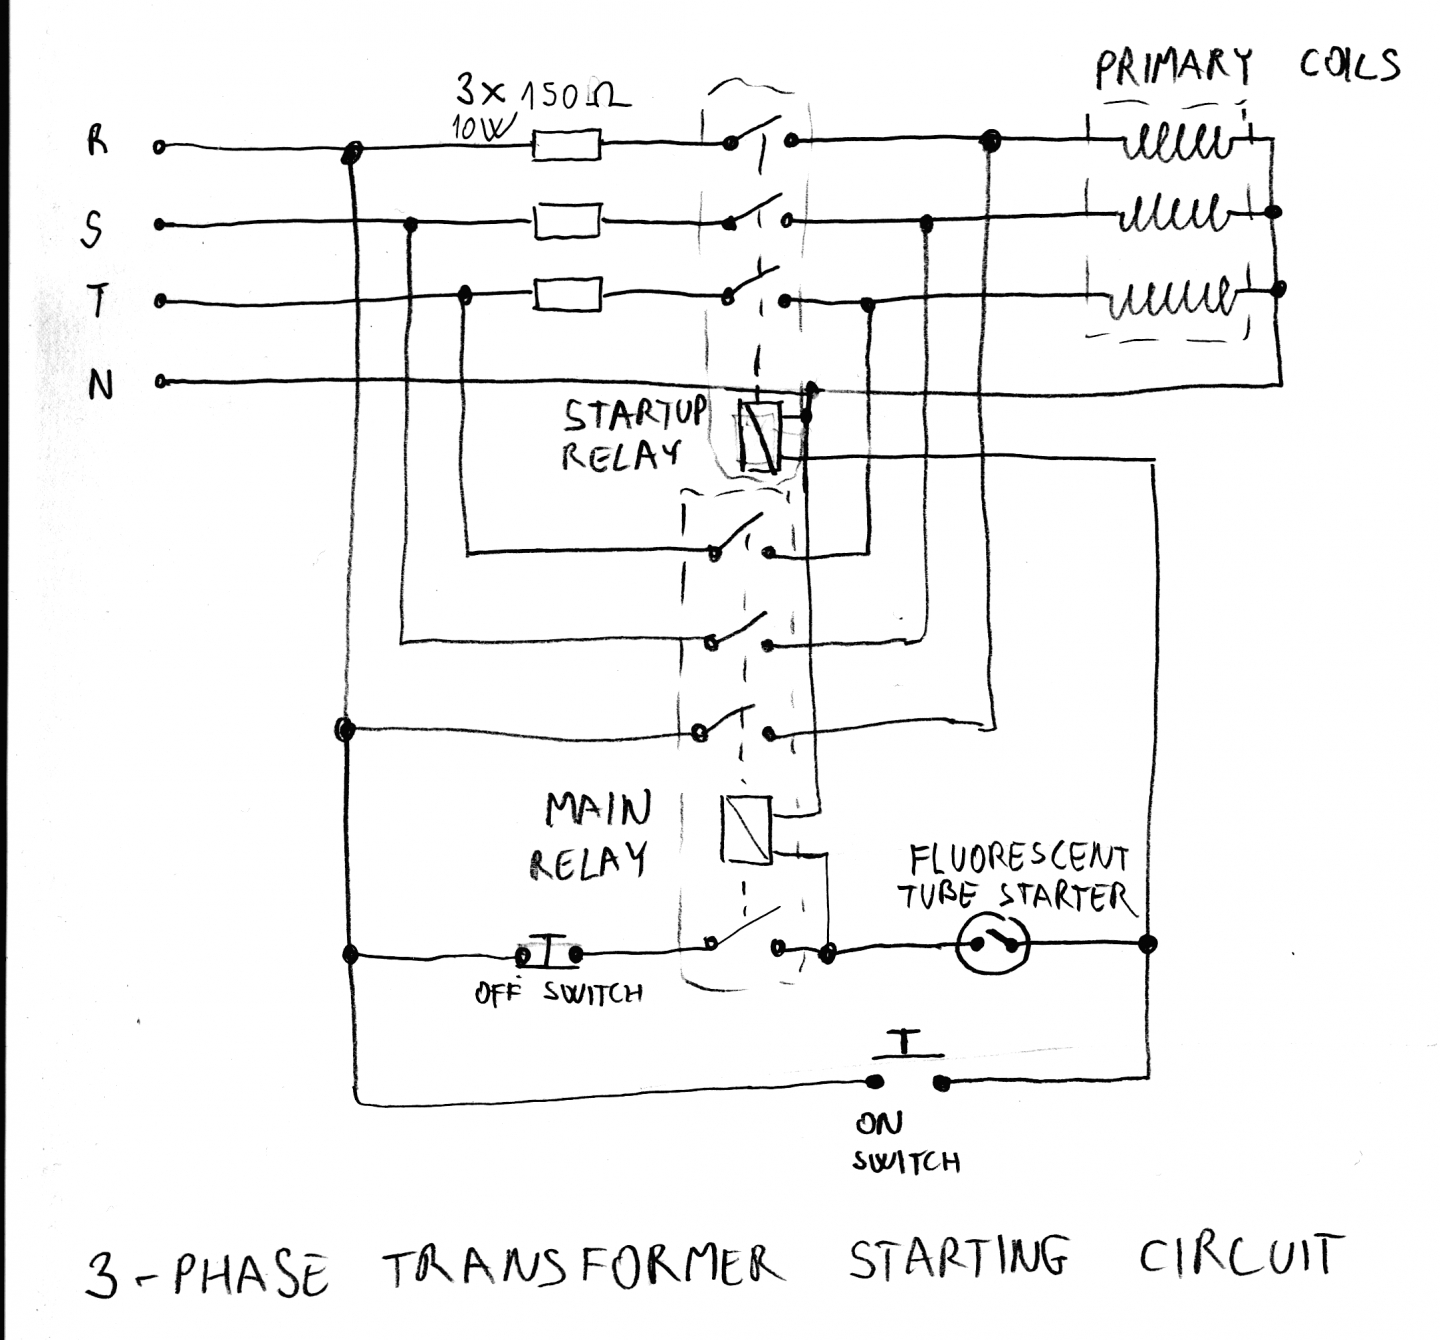 480V Transformer Wiring Diagram 12V | Manual E-Books - 480V To 120V Transformer Wiring Diagram